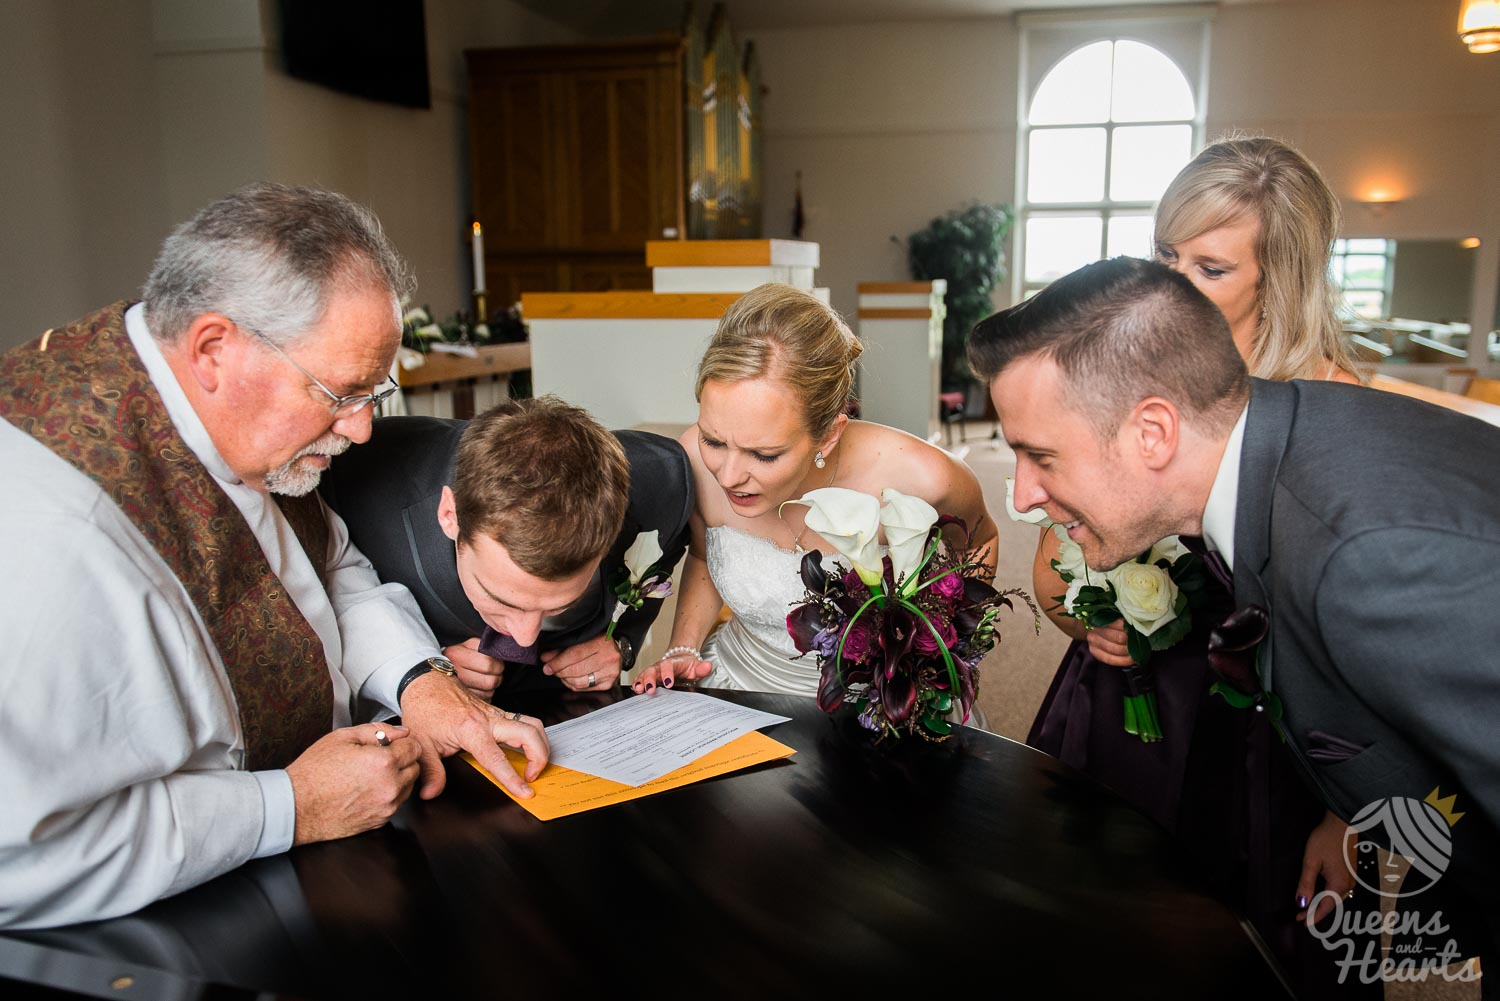 First_Presbyterian_Church_Waunakee_The_Old_Feed_Mill_Wedding_Mazomanie_Queens_Hearts_Photography-0167